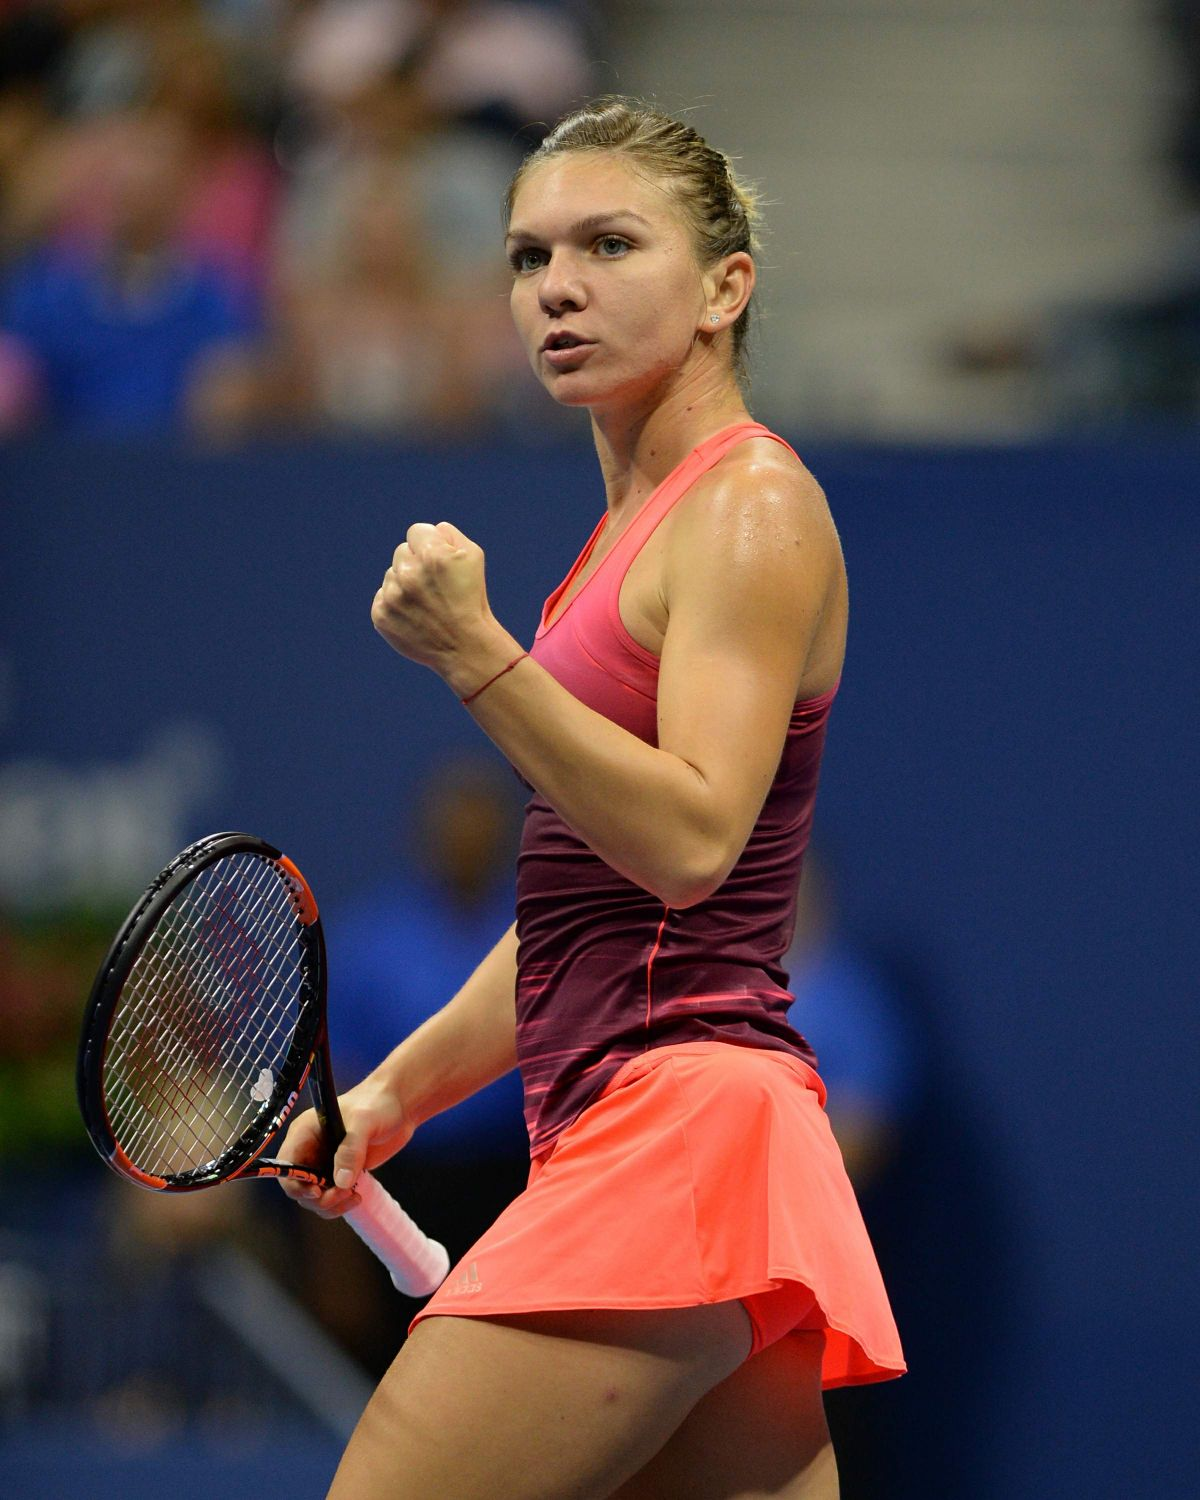 Simona Halep - Page 8 Simona-halep-at-2015-us-open-in-new-york-day-6-09-05-2015_1